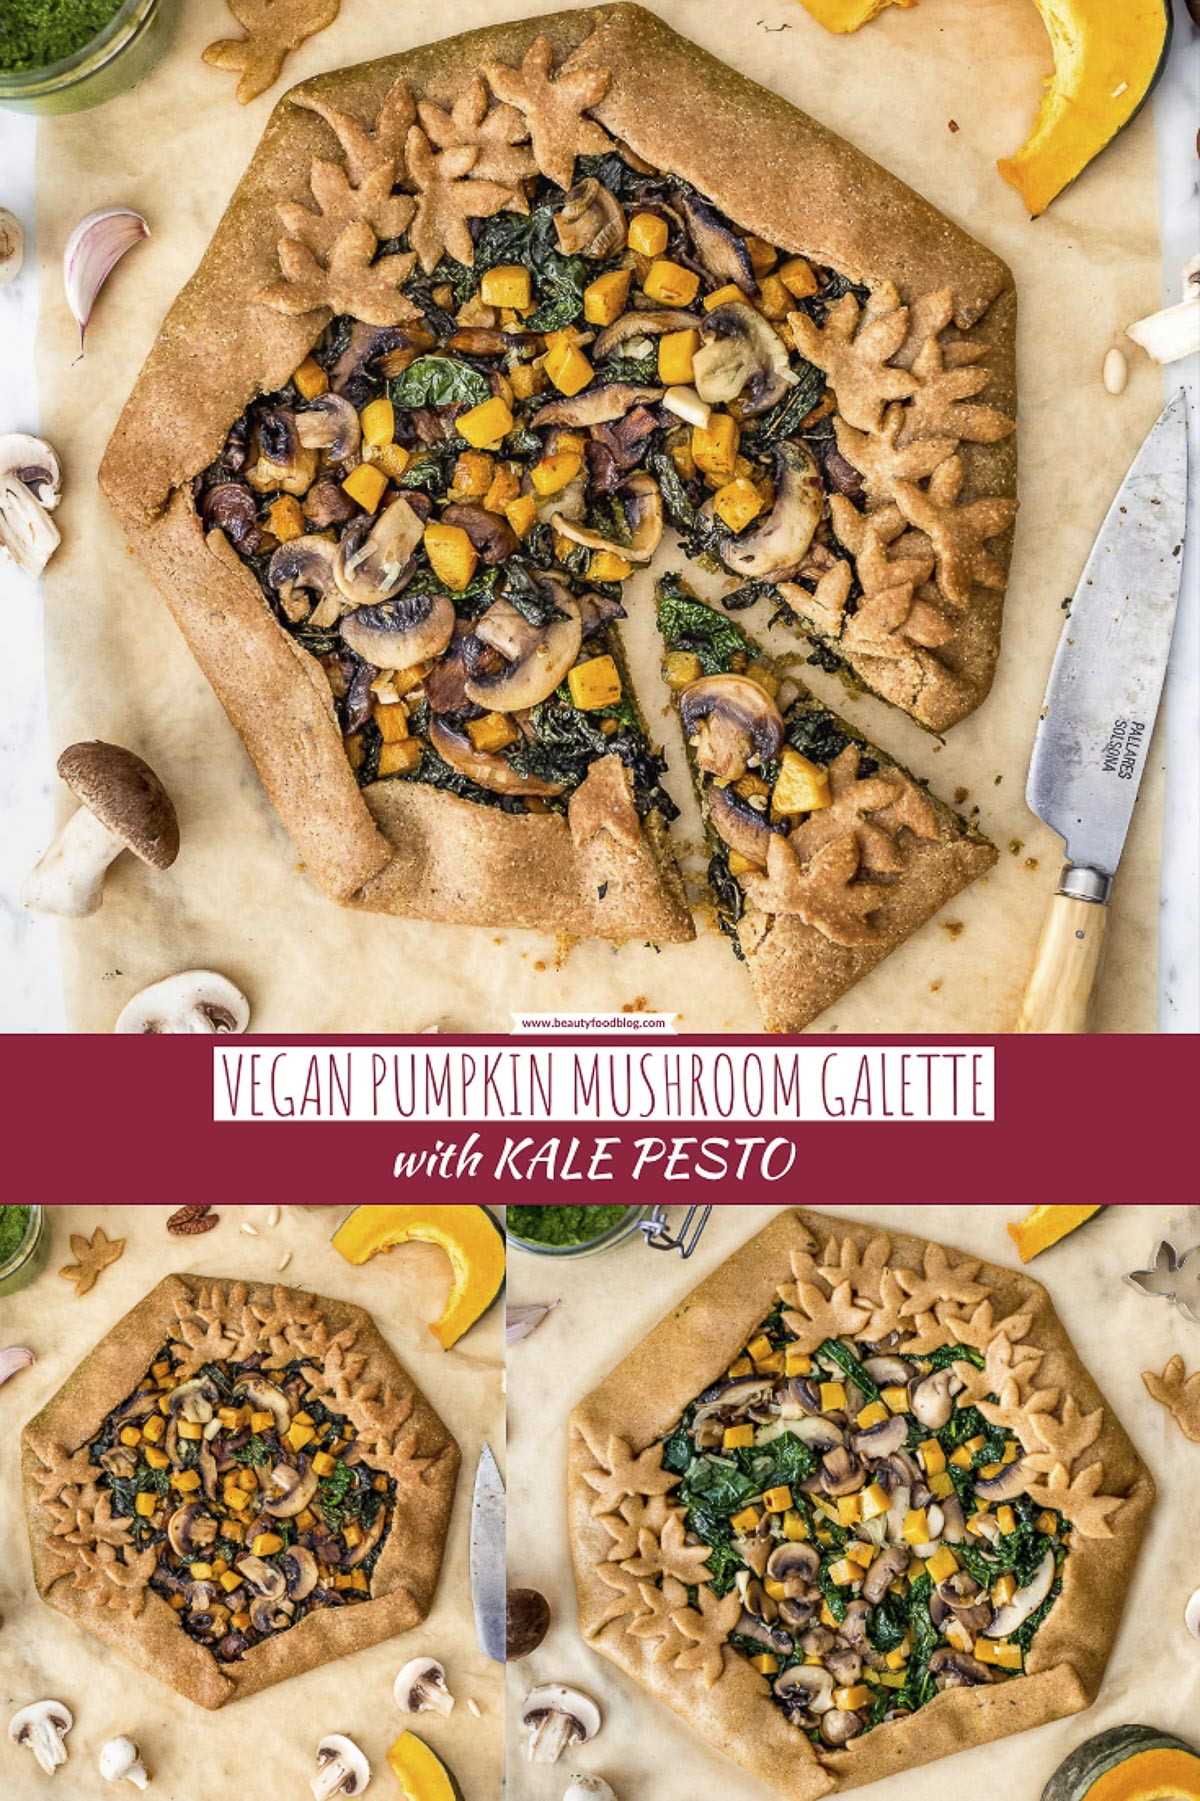 #VEGAN MUSHROOM #PUMPKIN GALETTE with kale pesto and #vegetables TORTA SALATA zucca e funghi vegan di farro integrale e pesto di cavolo nero #healthy